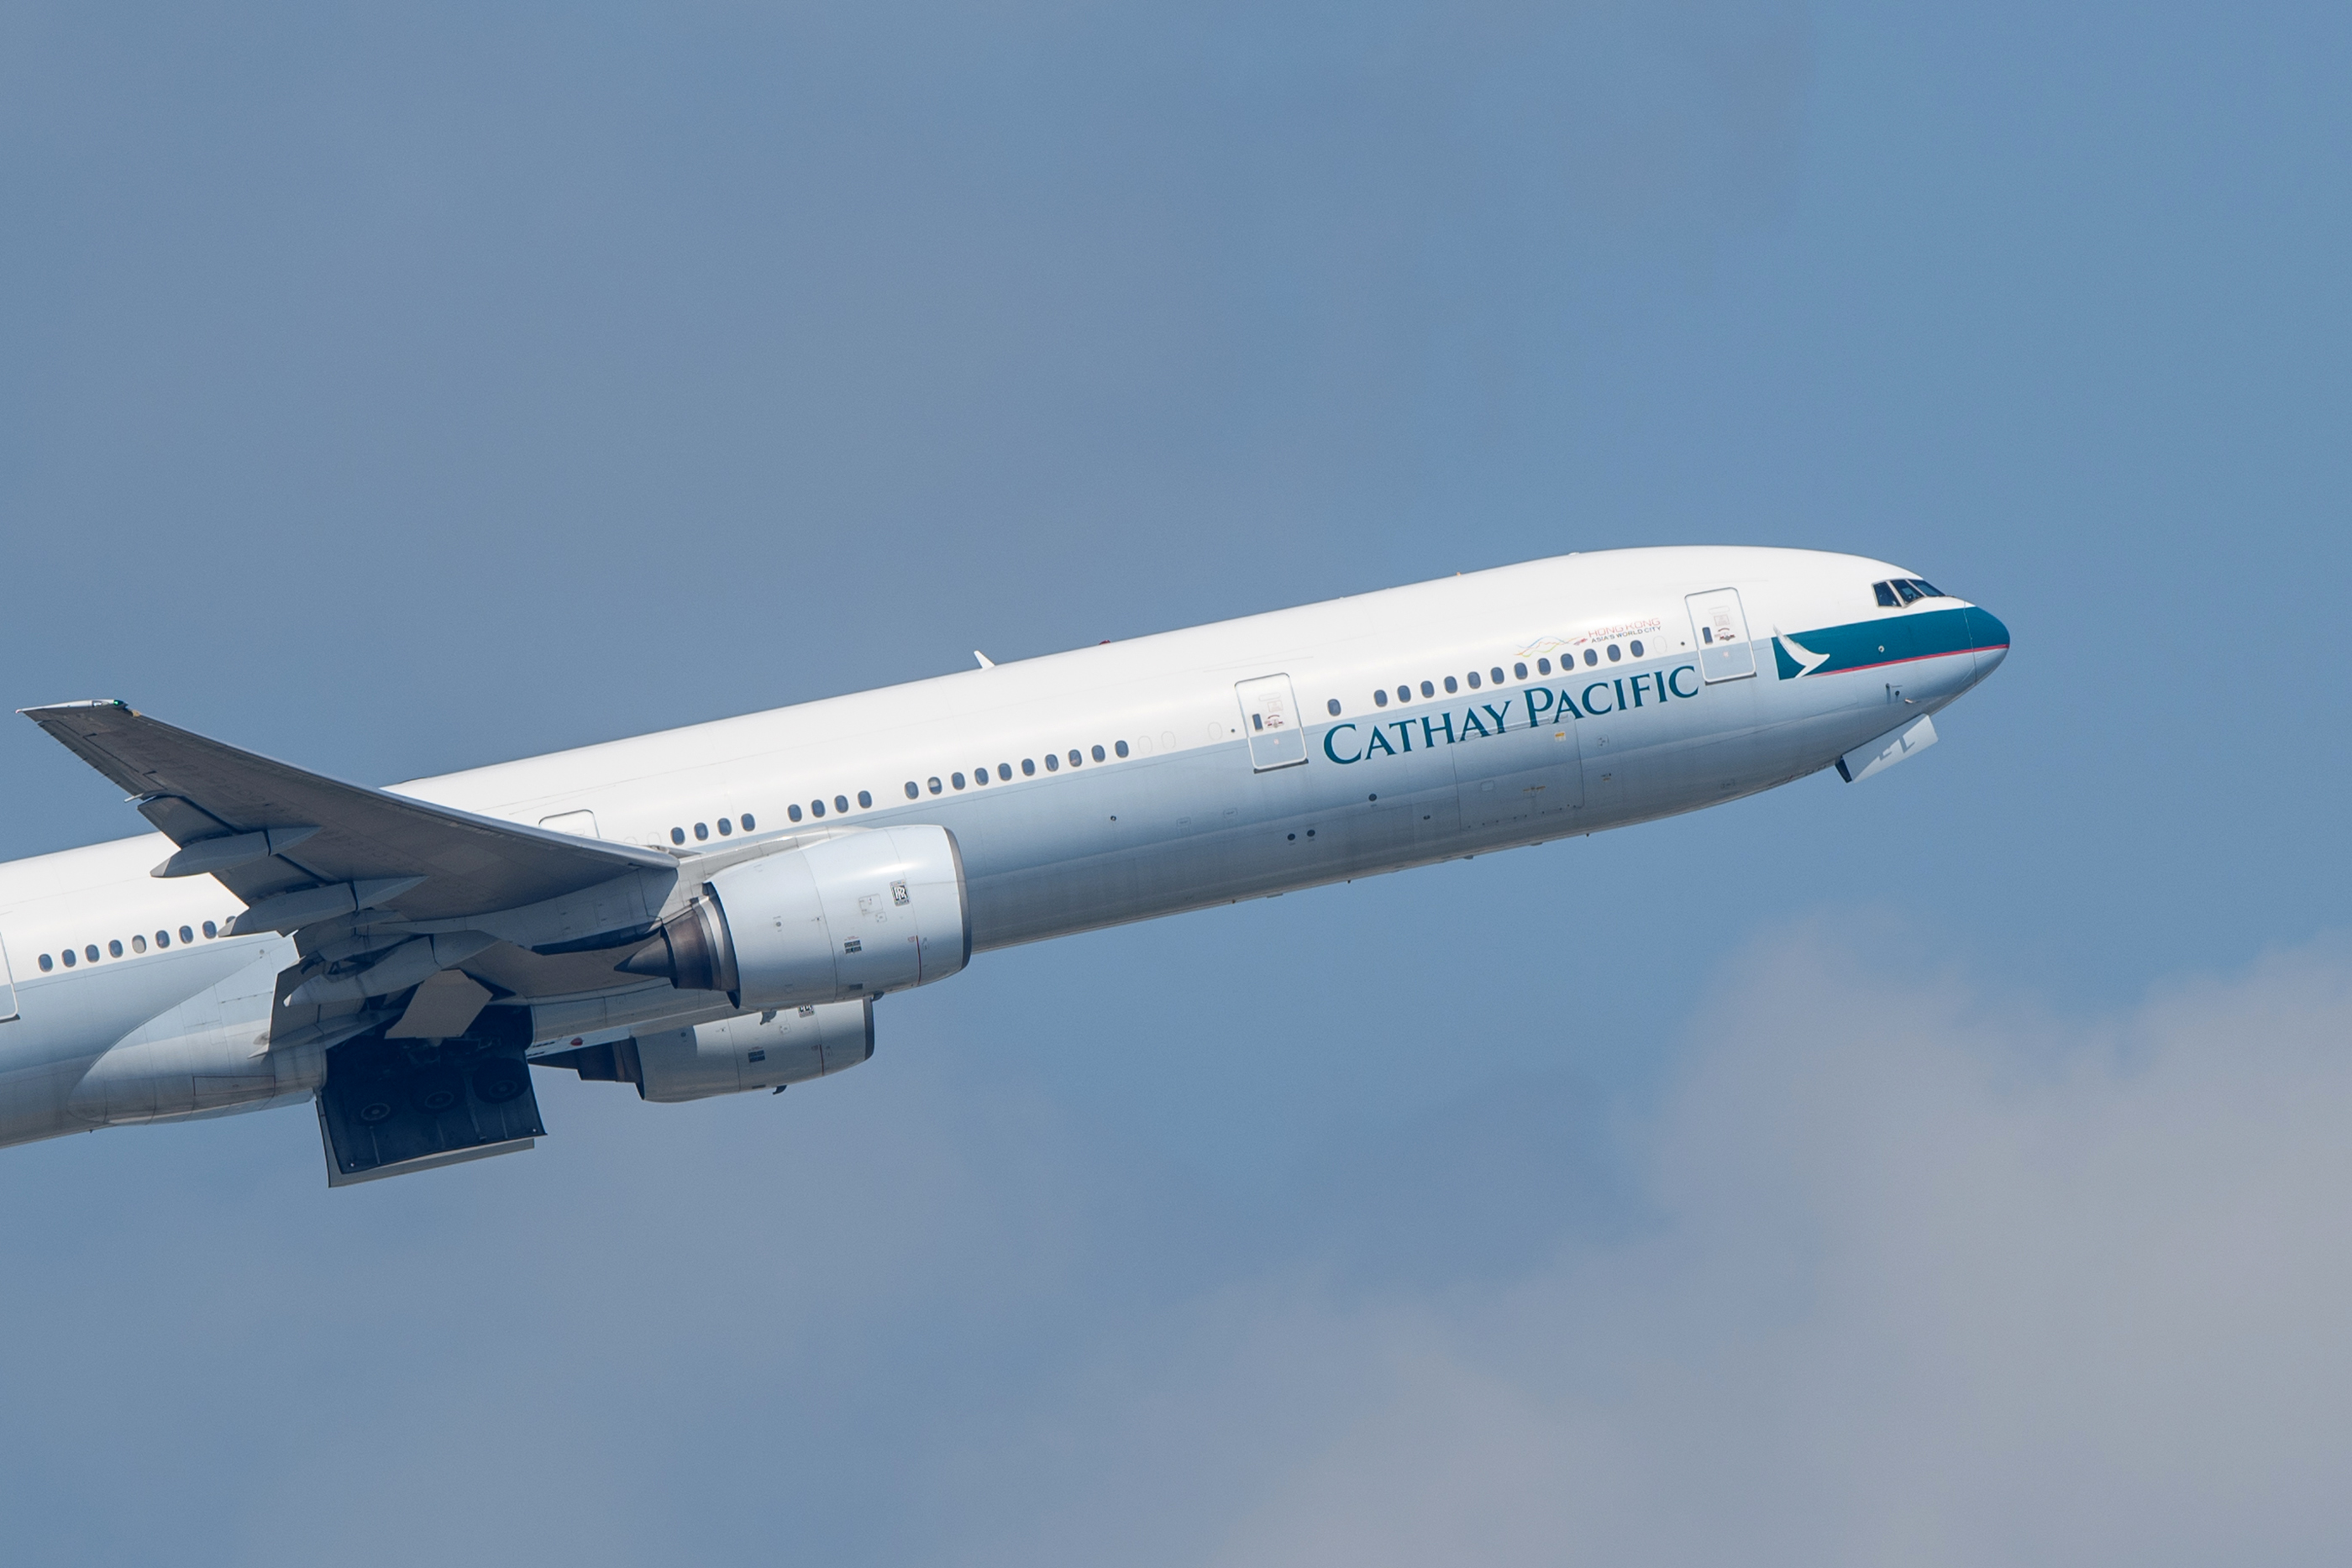 Cathay Pacific is one of several airlines that have canceled flights in Hong Kong today amid strikes and protests.